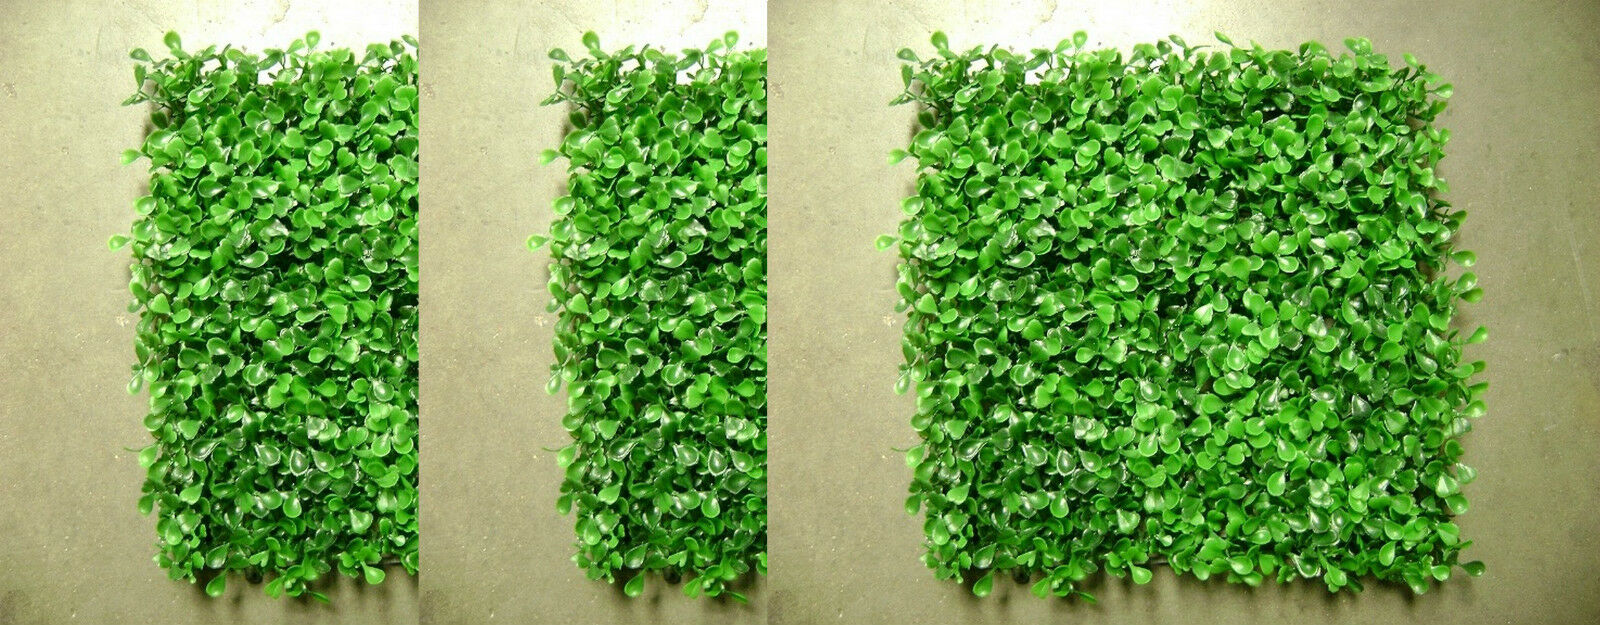 24 ARTIFICIAL IN OUTDOOR UV BOXWOOD MAT PATIO TURF HEDGE GRASS WALL FENCE PORCH